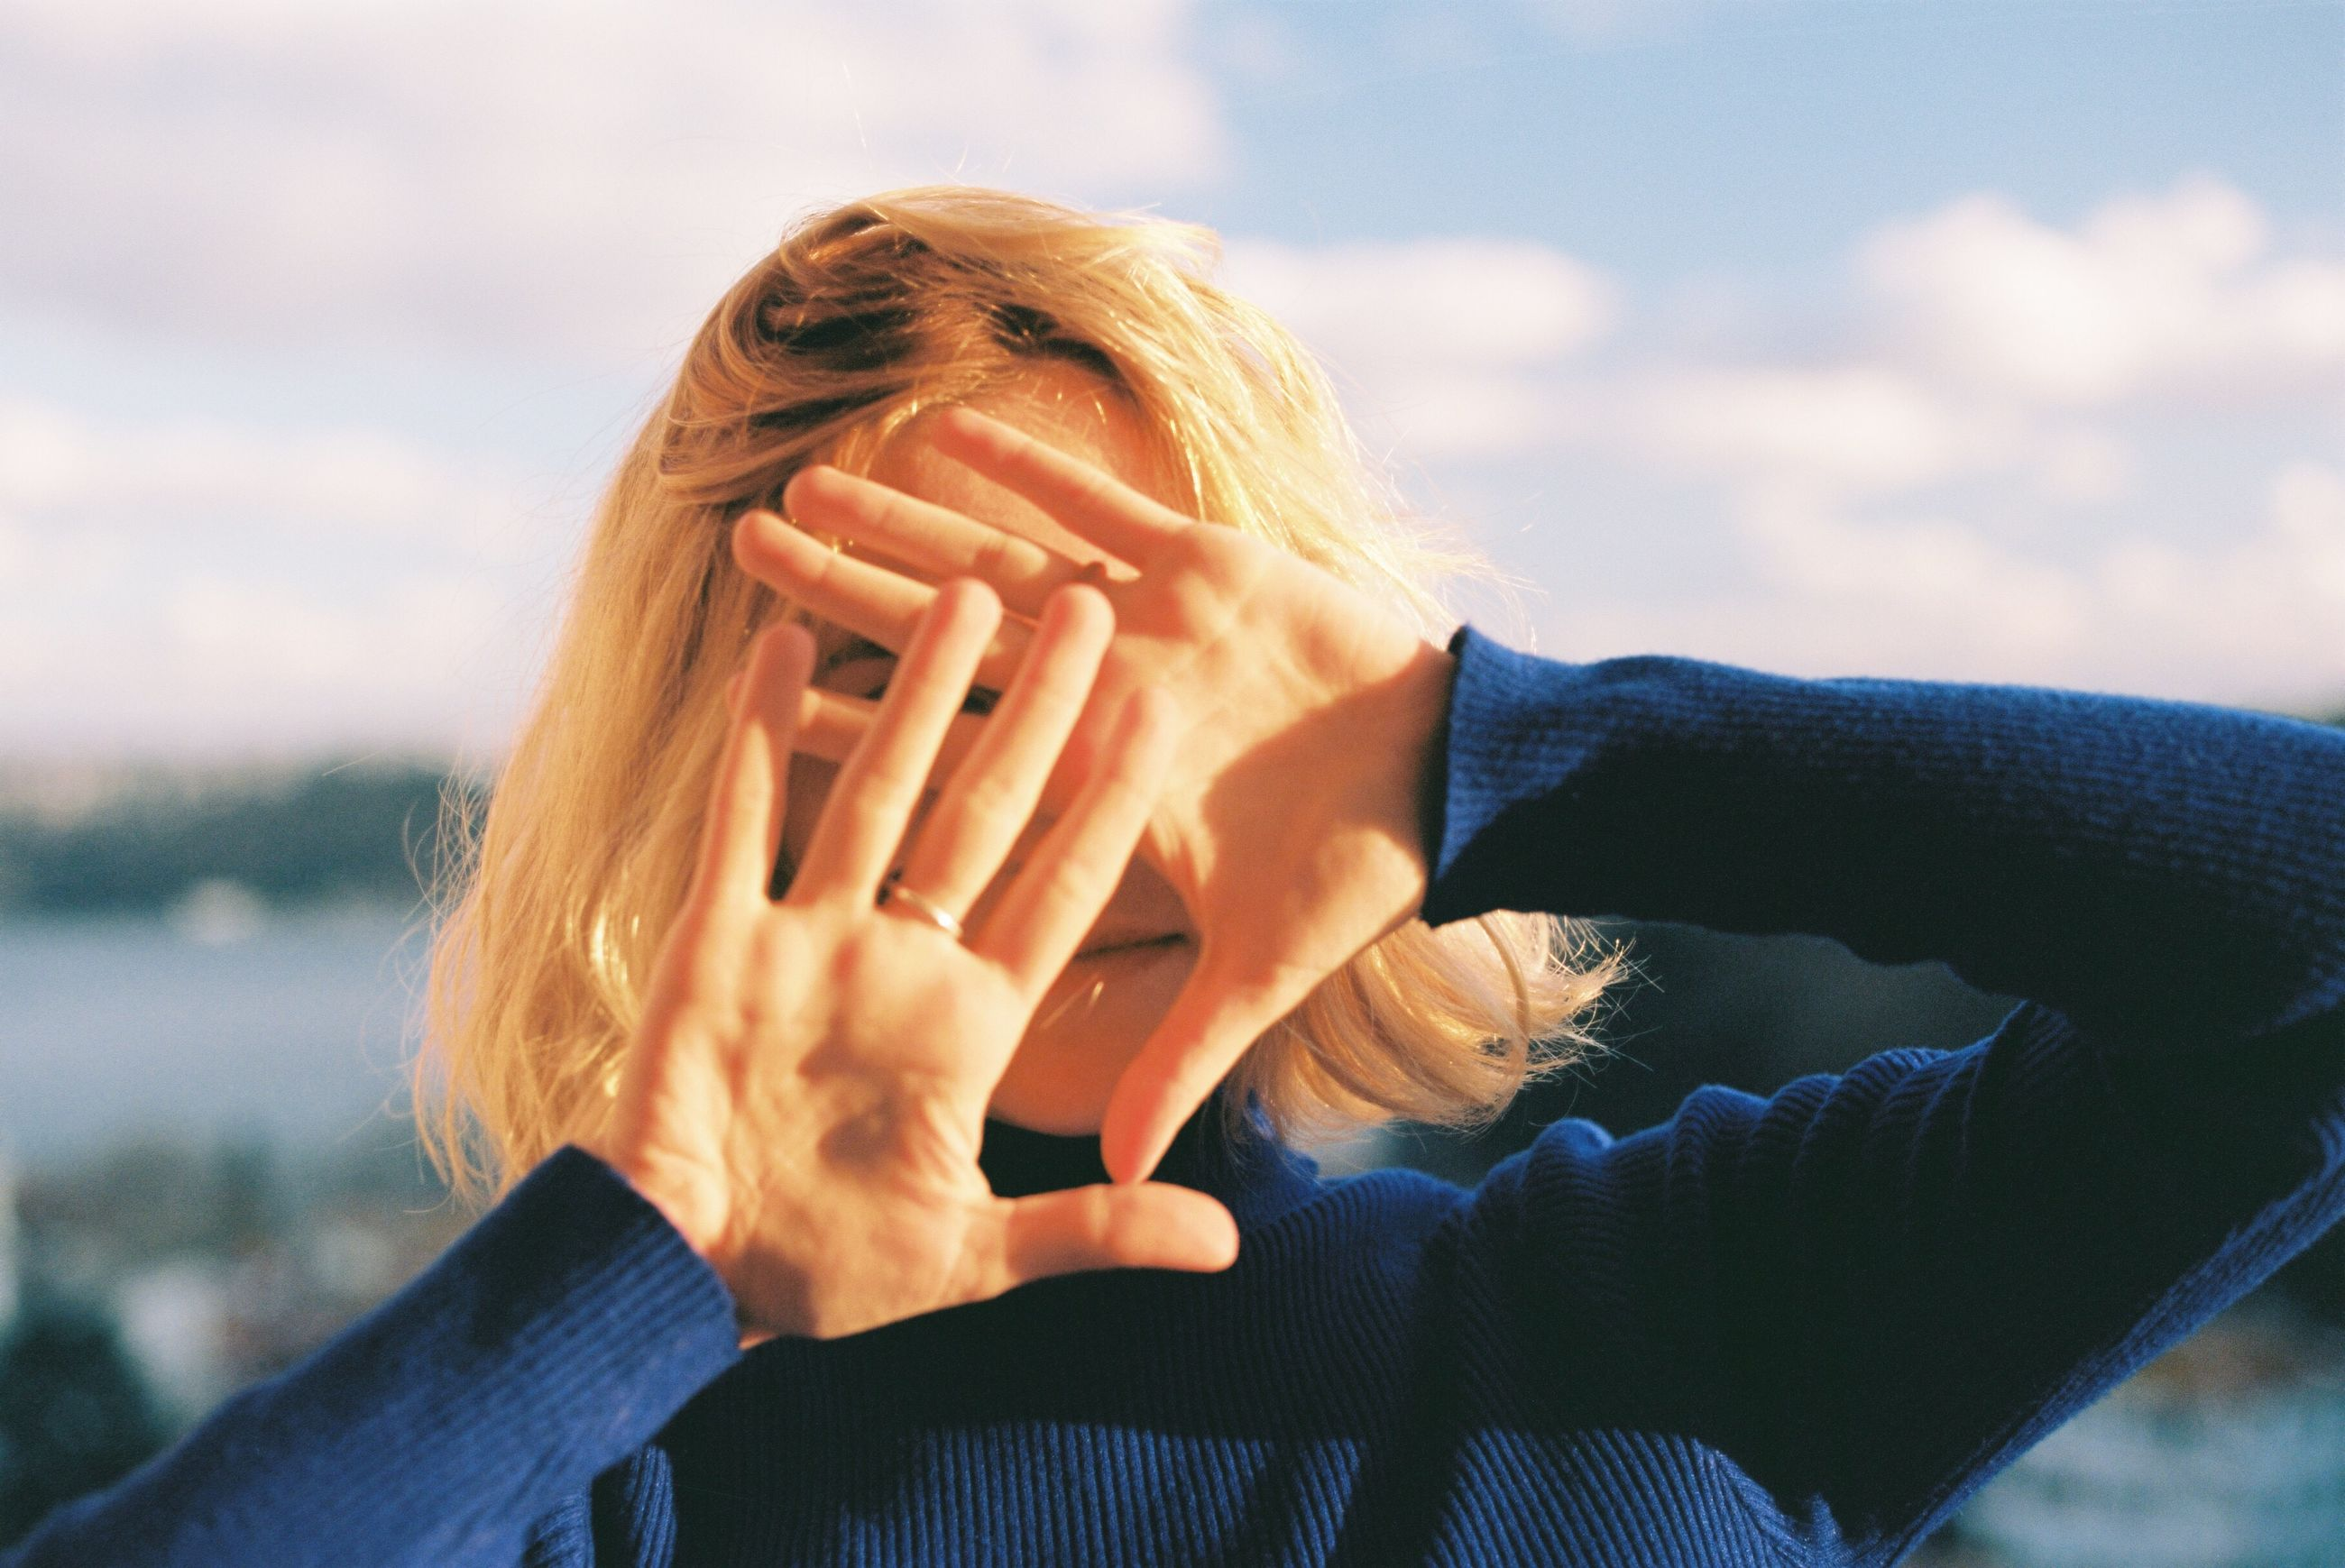 one person, headshot, leisure activity, real people, lifestyles, portrait, hand, obscured face, human hand, focus on foreground, sky, women, front view, adult, human body part, nature, unrecognizable person, covering, day, human face, outdoors, finger, warm clothing